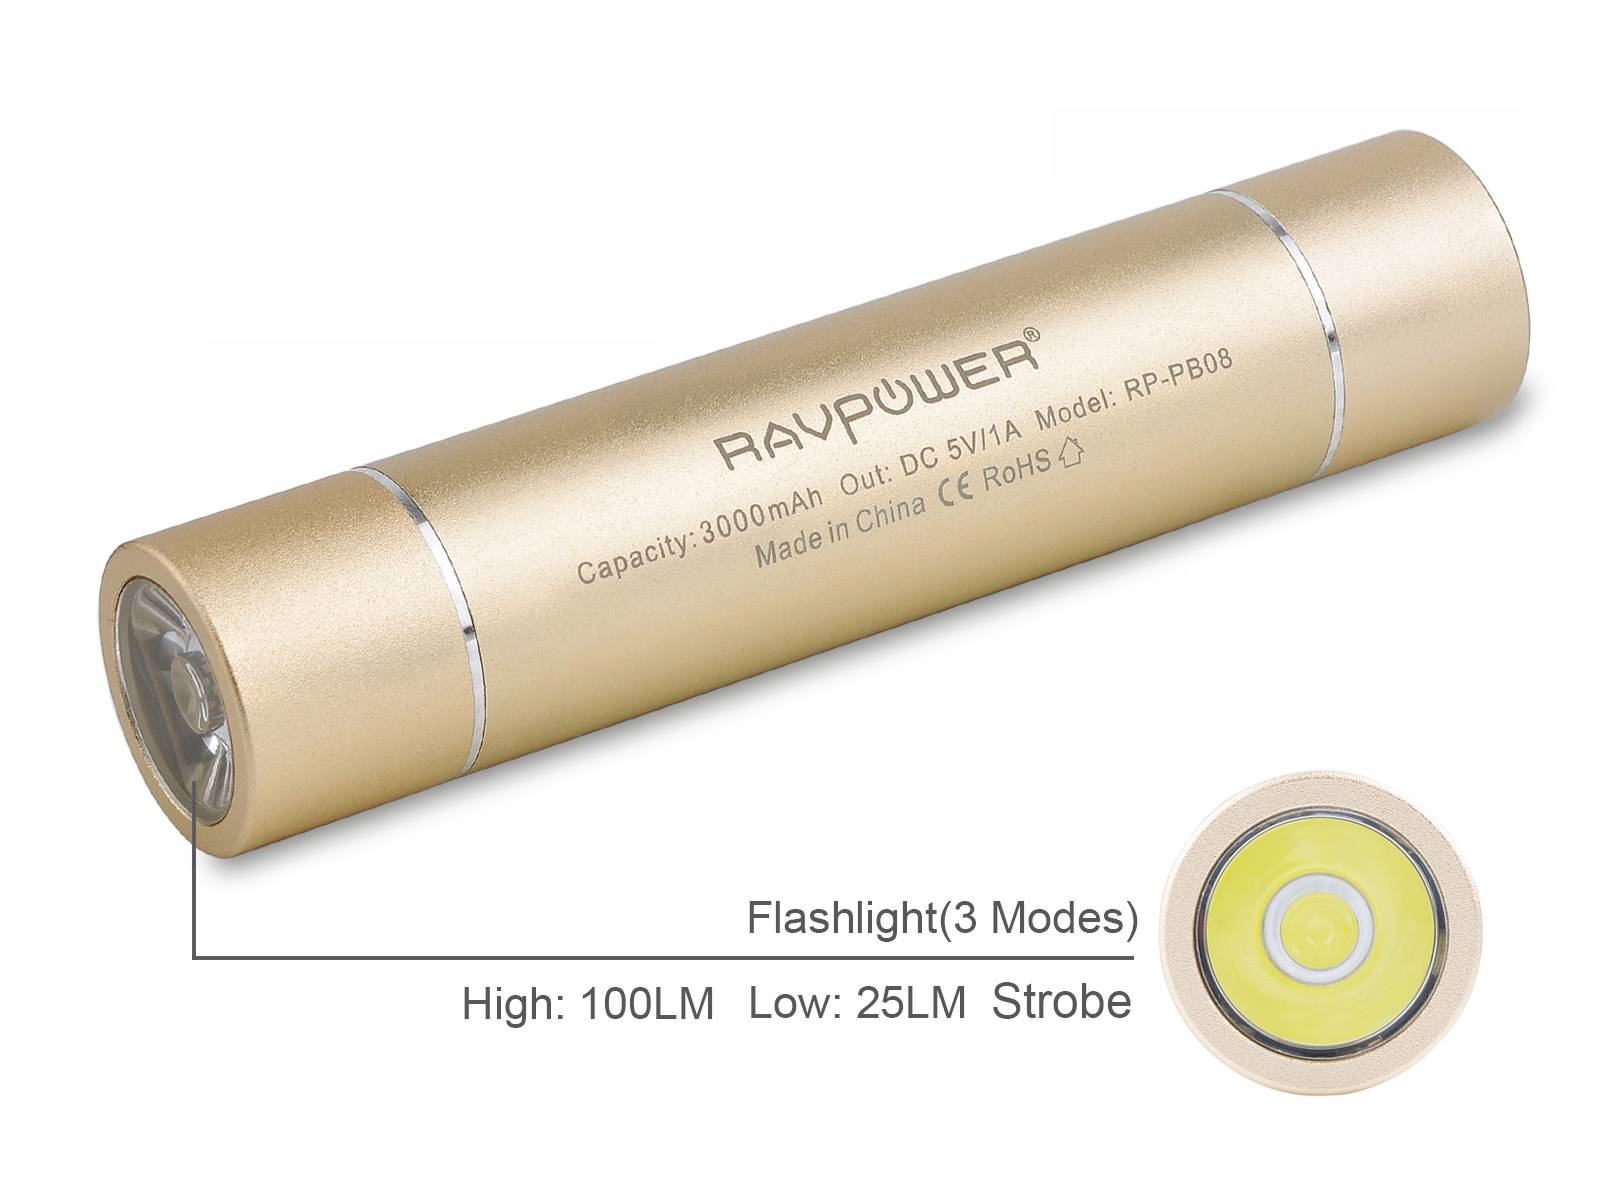 RAVPower Luster 3000mAh Power Bank External Battery Pack Lipstick Charger with Flashlight (3 Mode: High, Low, Strobe) for iPhone 5 5S 5C 4 4S, iPod; Galaxy S4 S3, Note 3, Note2; Nexus 4 and other